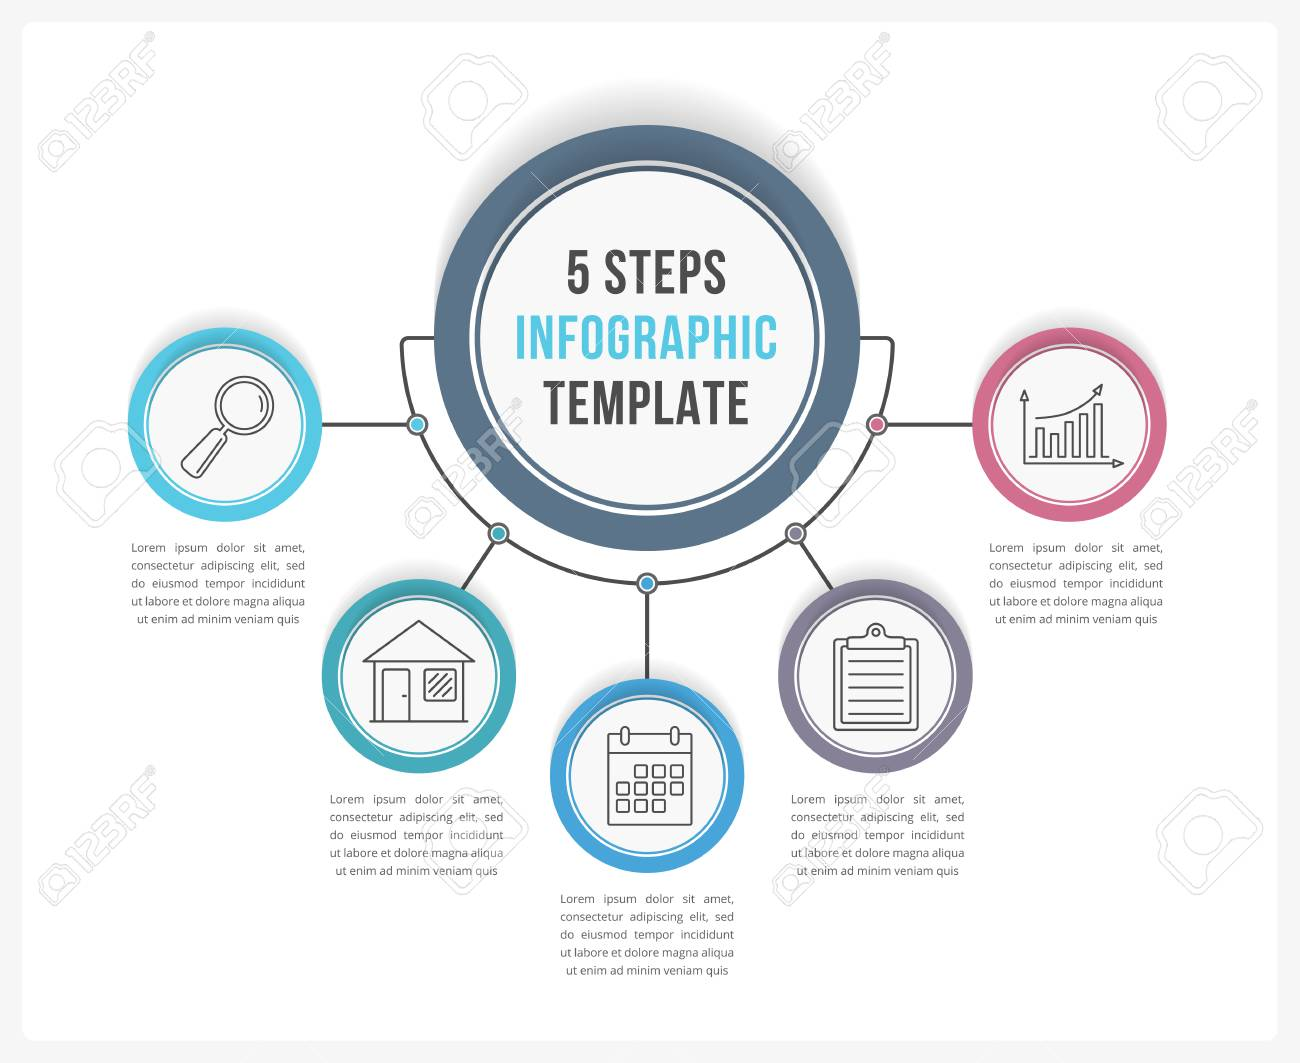 hight resolution of process flow diagram template stock vector 89055352